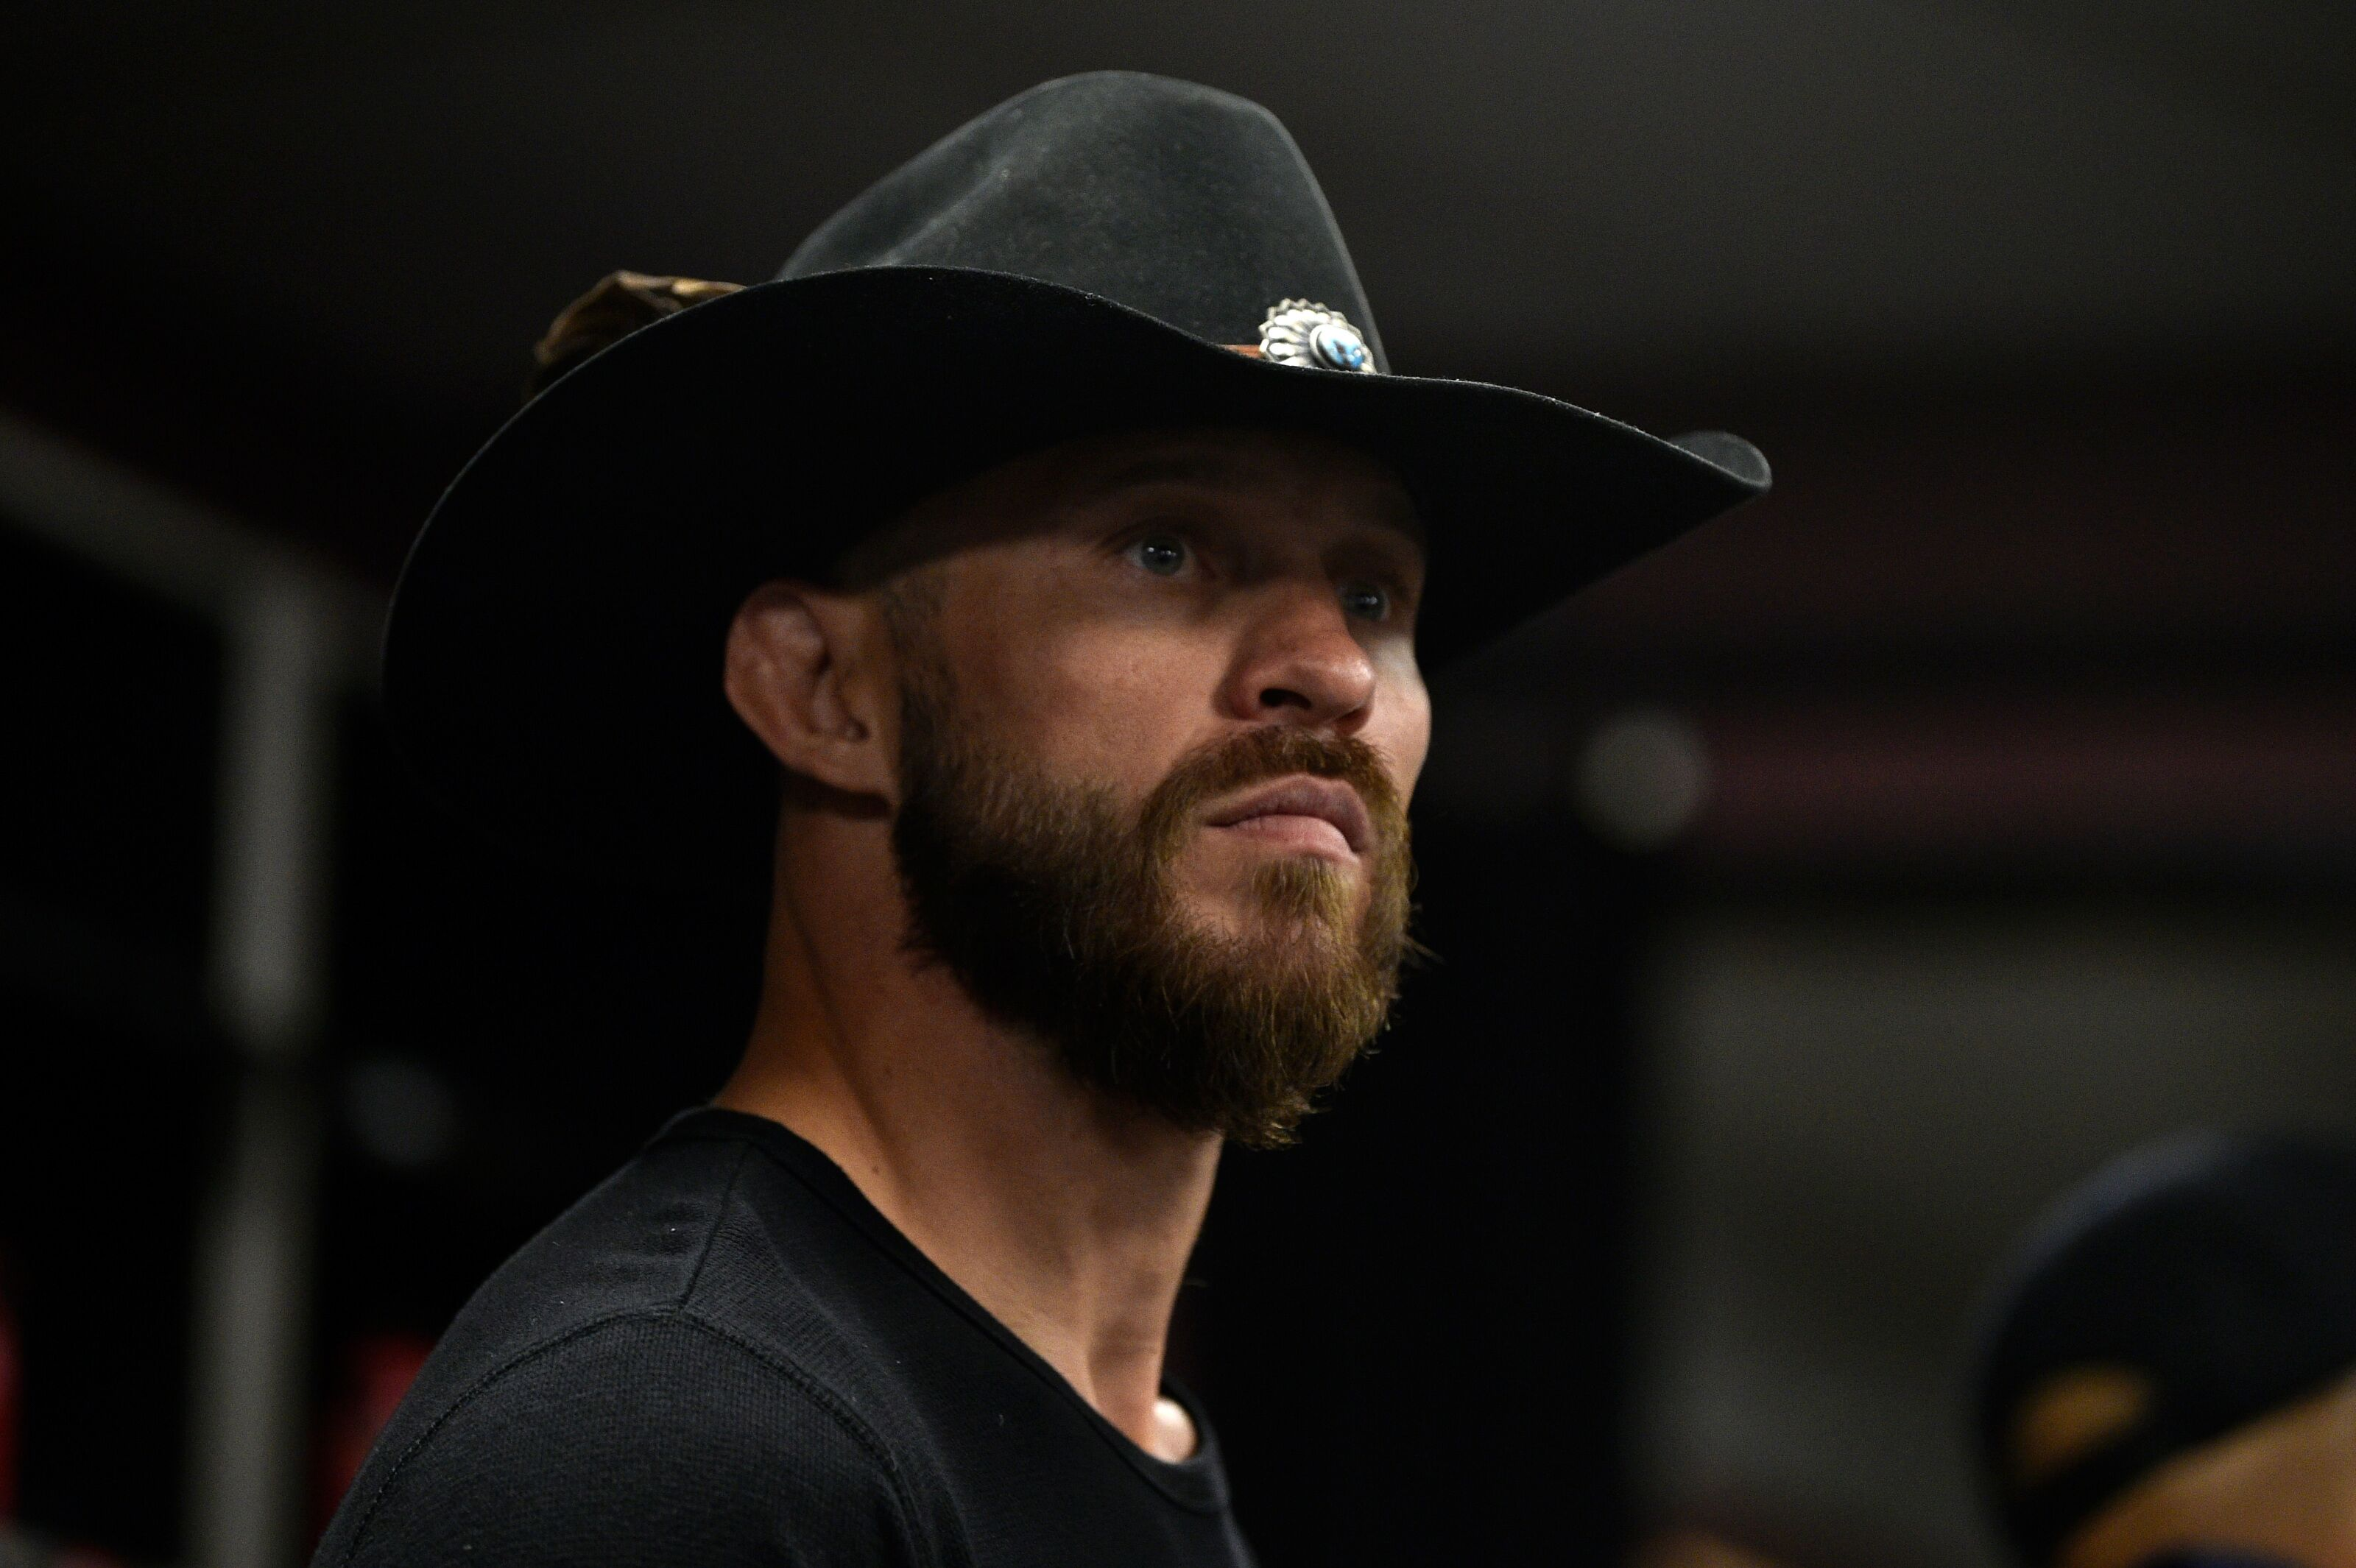 Is Donald 'Cowboy' Cerrone ever going to win a UFC title?